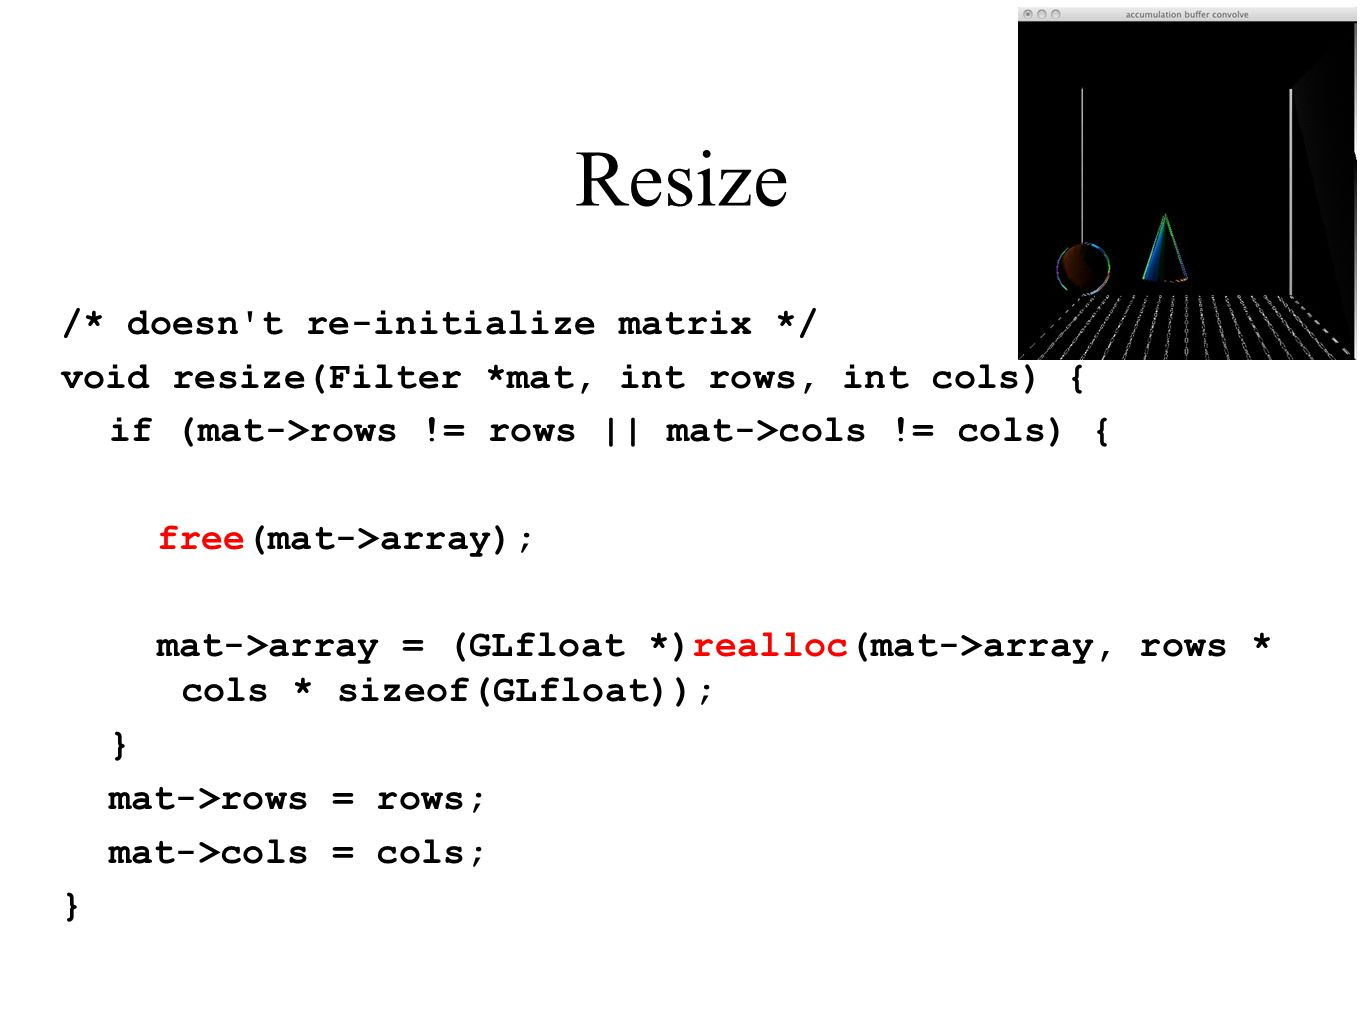 Resize /* doesn't re-initialize matrix */ void resize(Filter *mat, int rows, int cols) { if (mat->rows != rows || mat->cols != cols) { free(mat->array